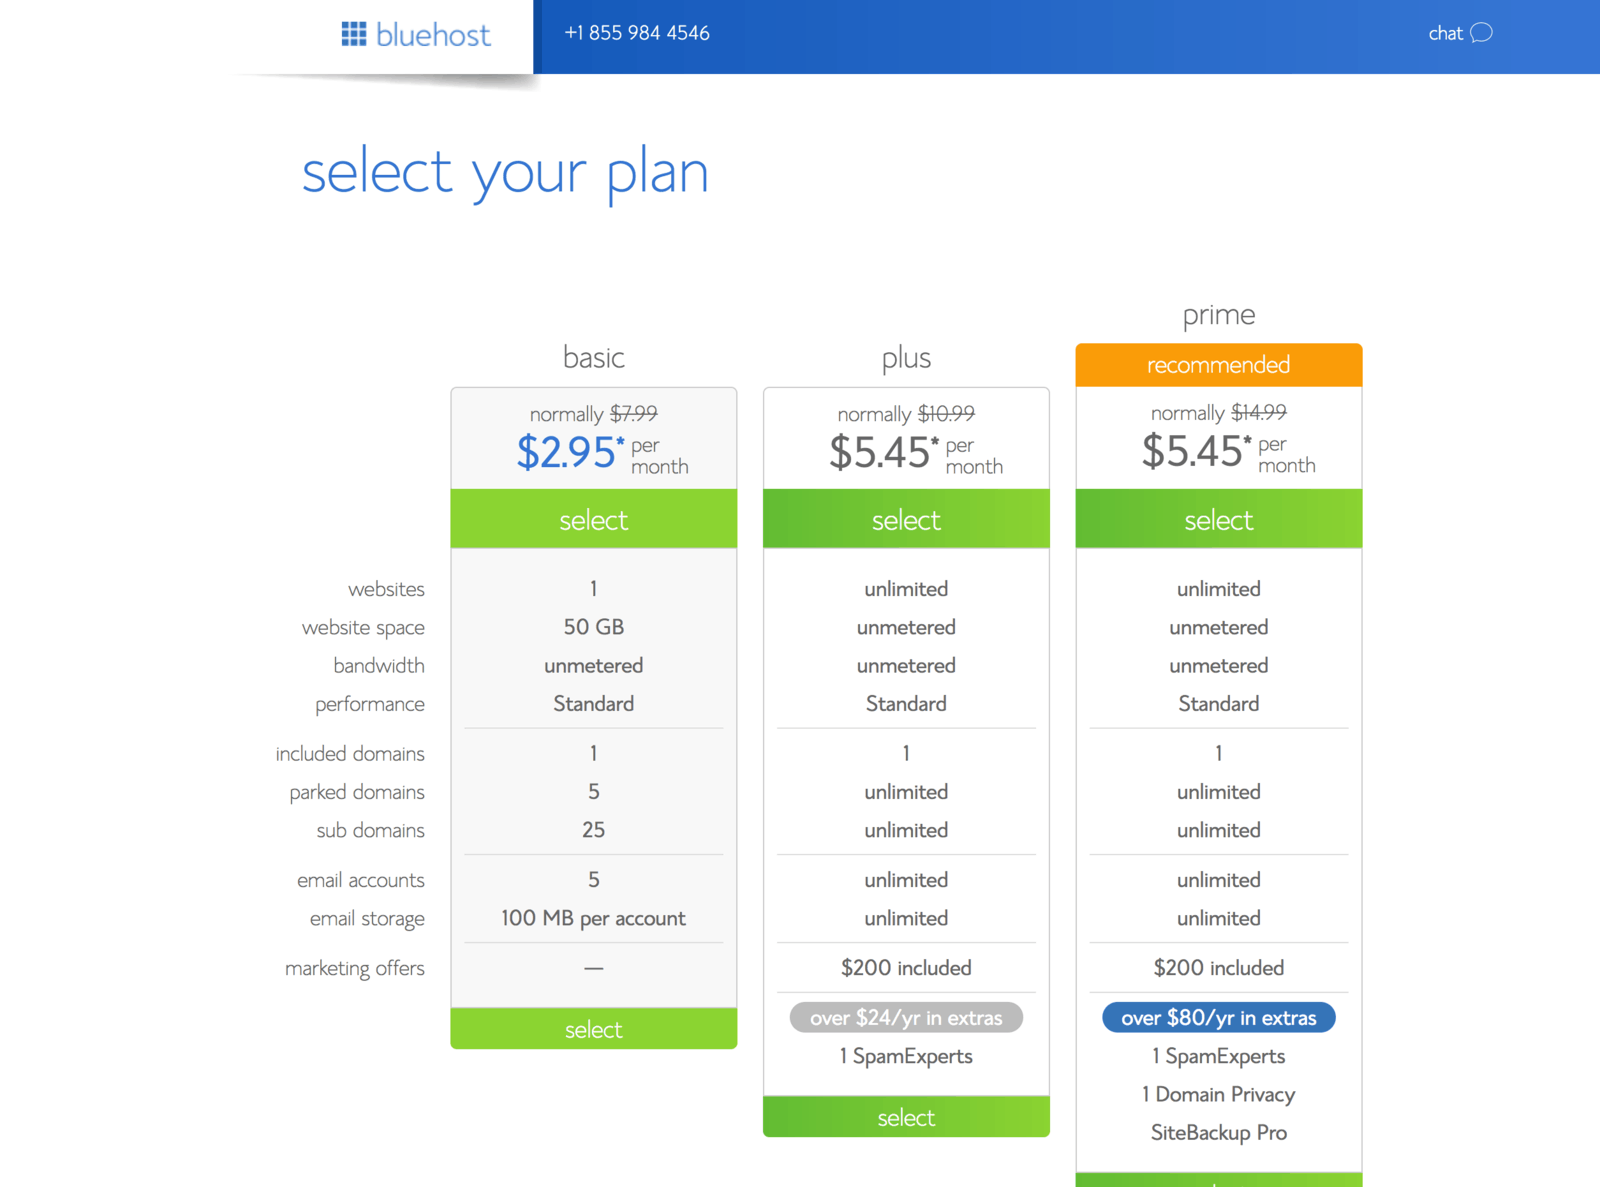 bluehost pricing page